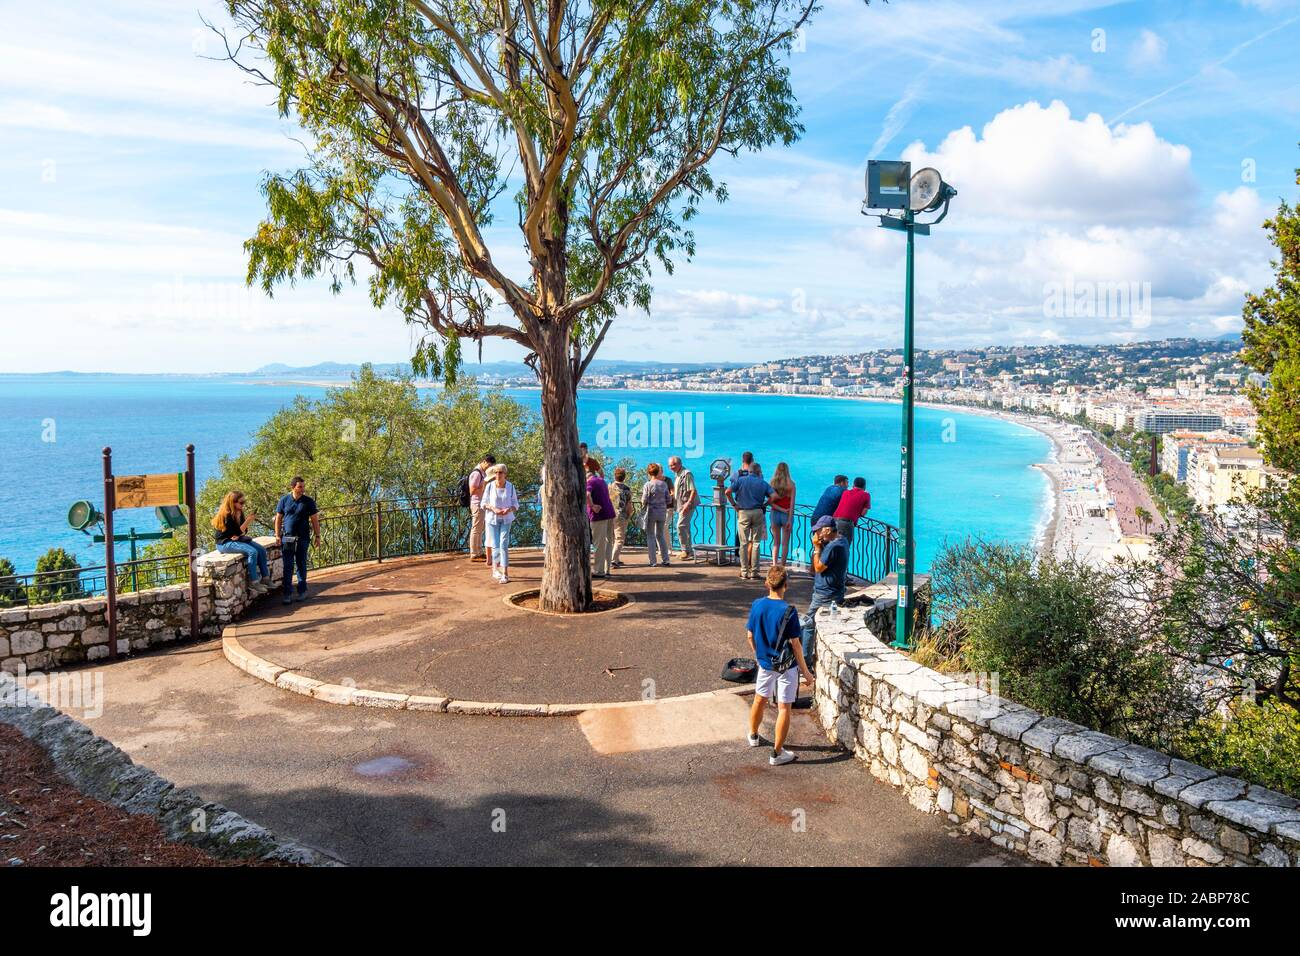 Tourists visit Castle Hill overlooking the turquoise Mediterranean Sea and the city of Nice France, on the Riviera as a busker plays harmonica nearby Stock Photo